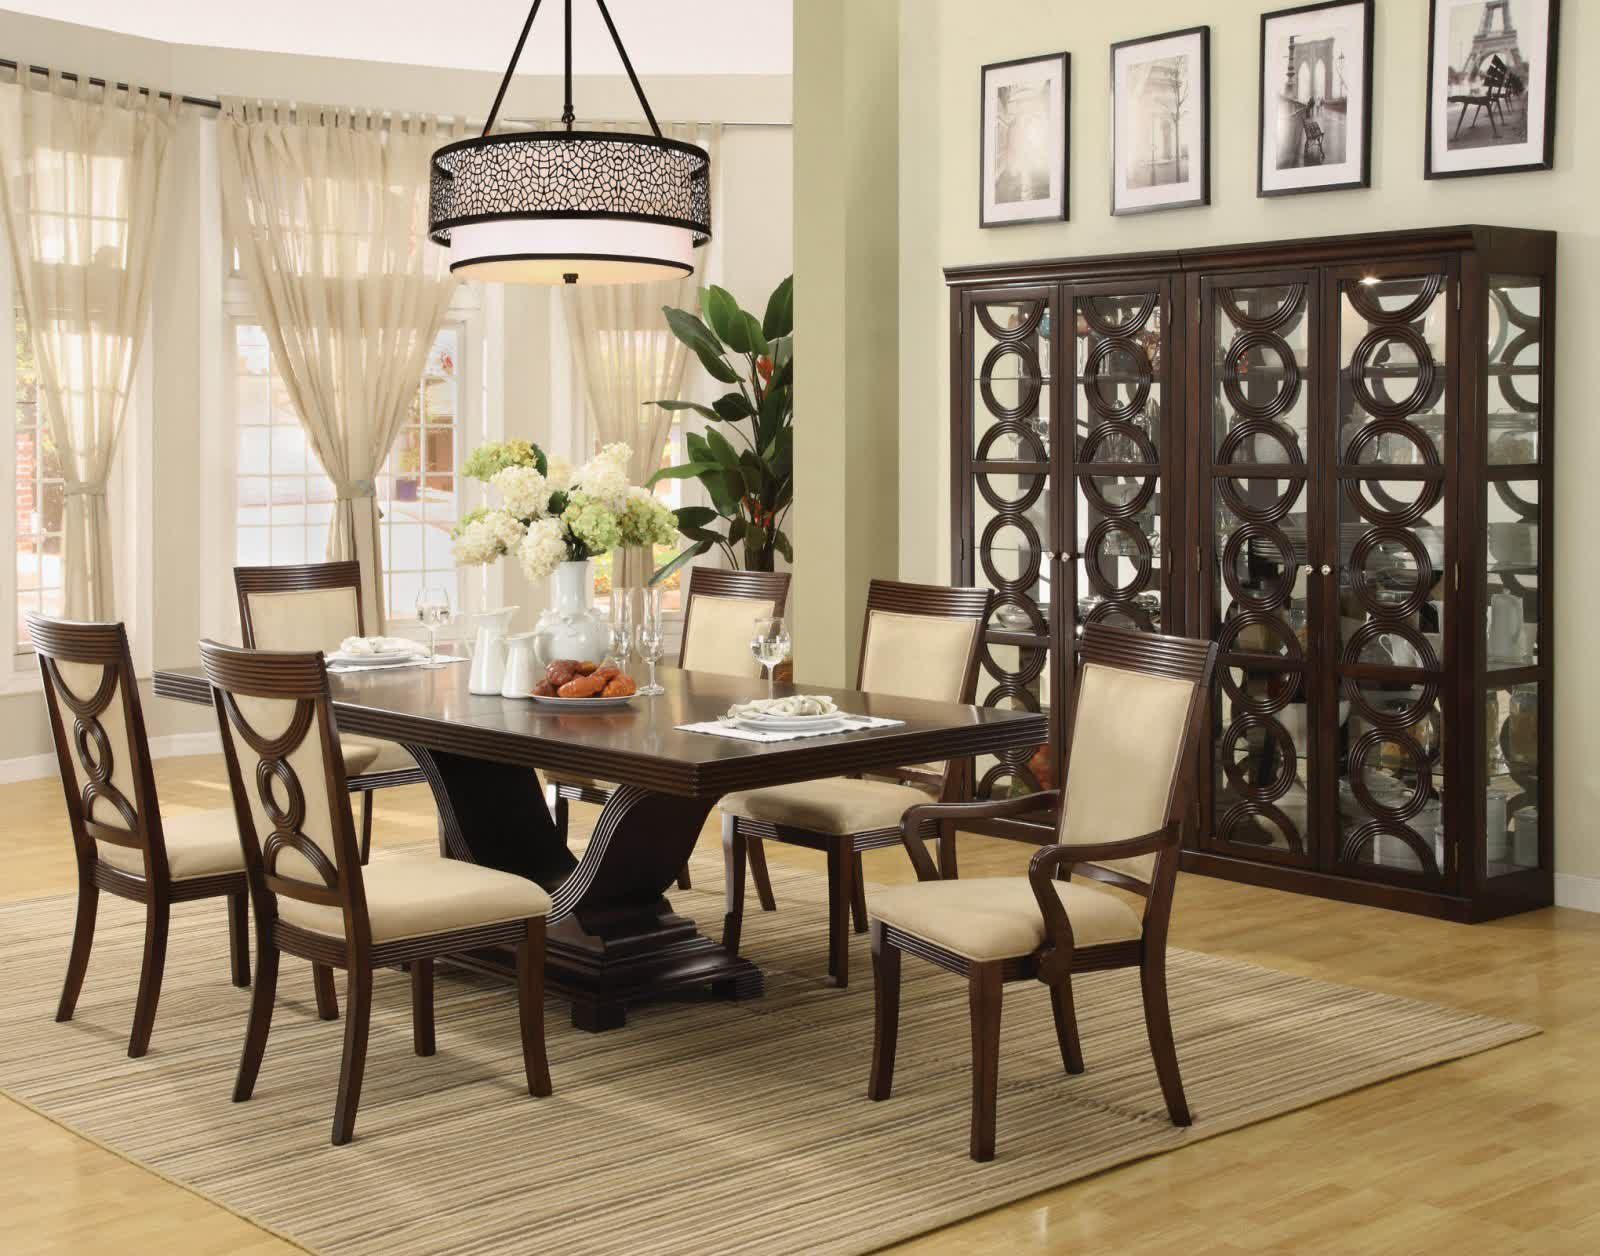 Appealing Dining Table Centerpieces Used in Open Dining Room with Wooden Chairss and Grey Carpet